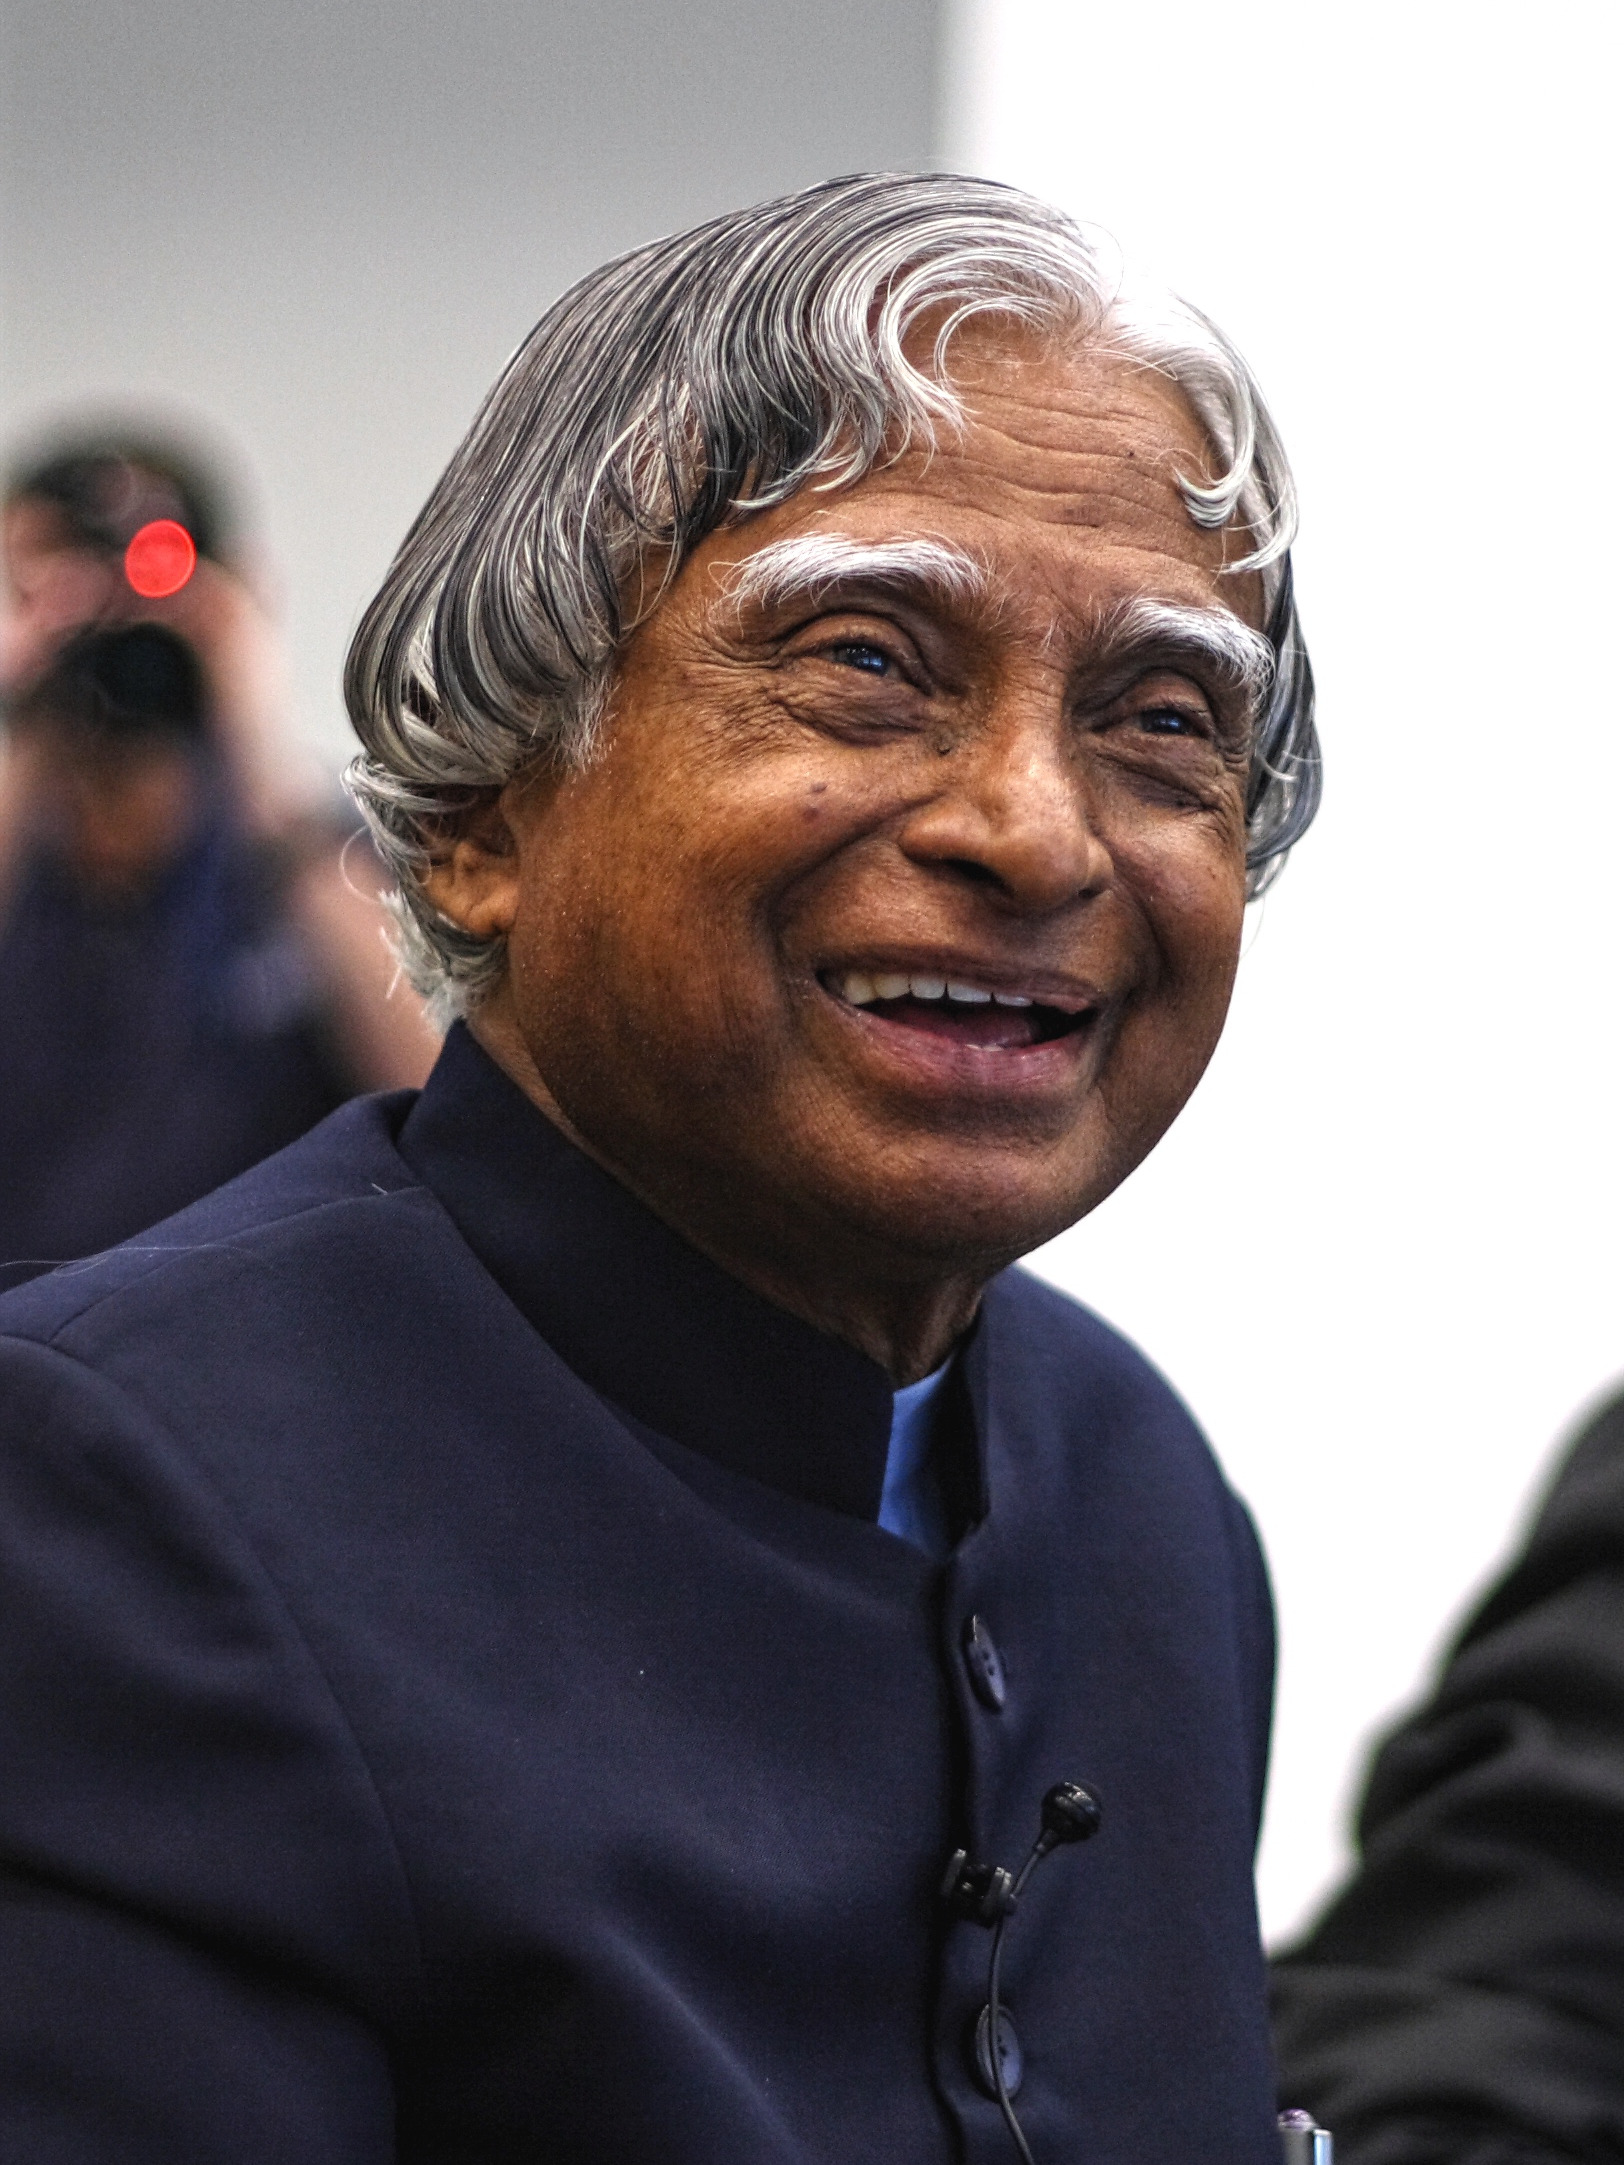 apj abdul kalam Former indian president apj abdul kalam, a scientist who was known as the father of the country's military missile program, died july 27 after collapsing while delivering a lecture he was 83 mr kalam fell sick while addressing students at the indian institute of management in the meghalaya.